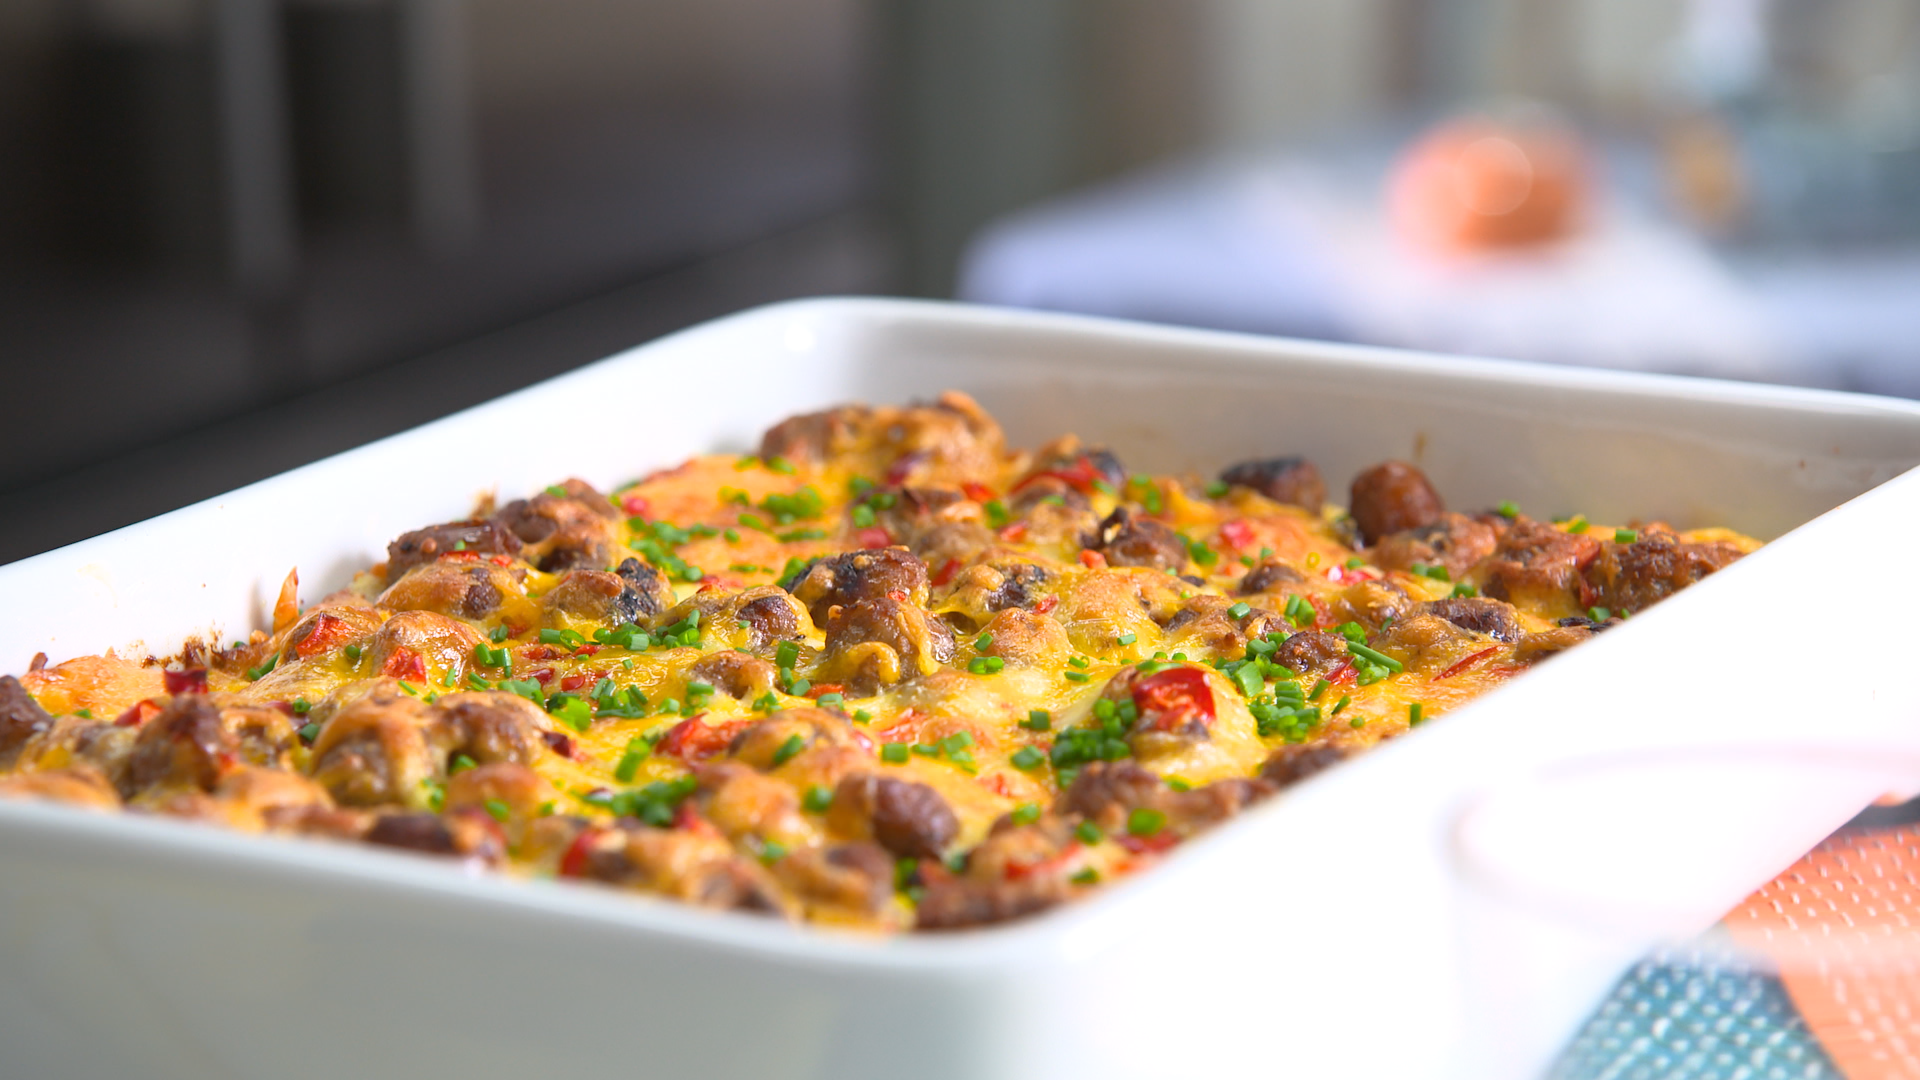 Best Bites: Overnight success: Overnight sausage, egg & cheese breakfast casserole